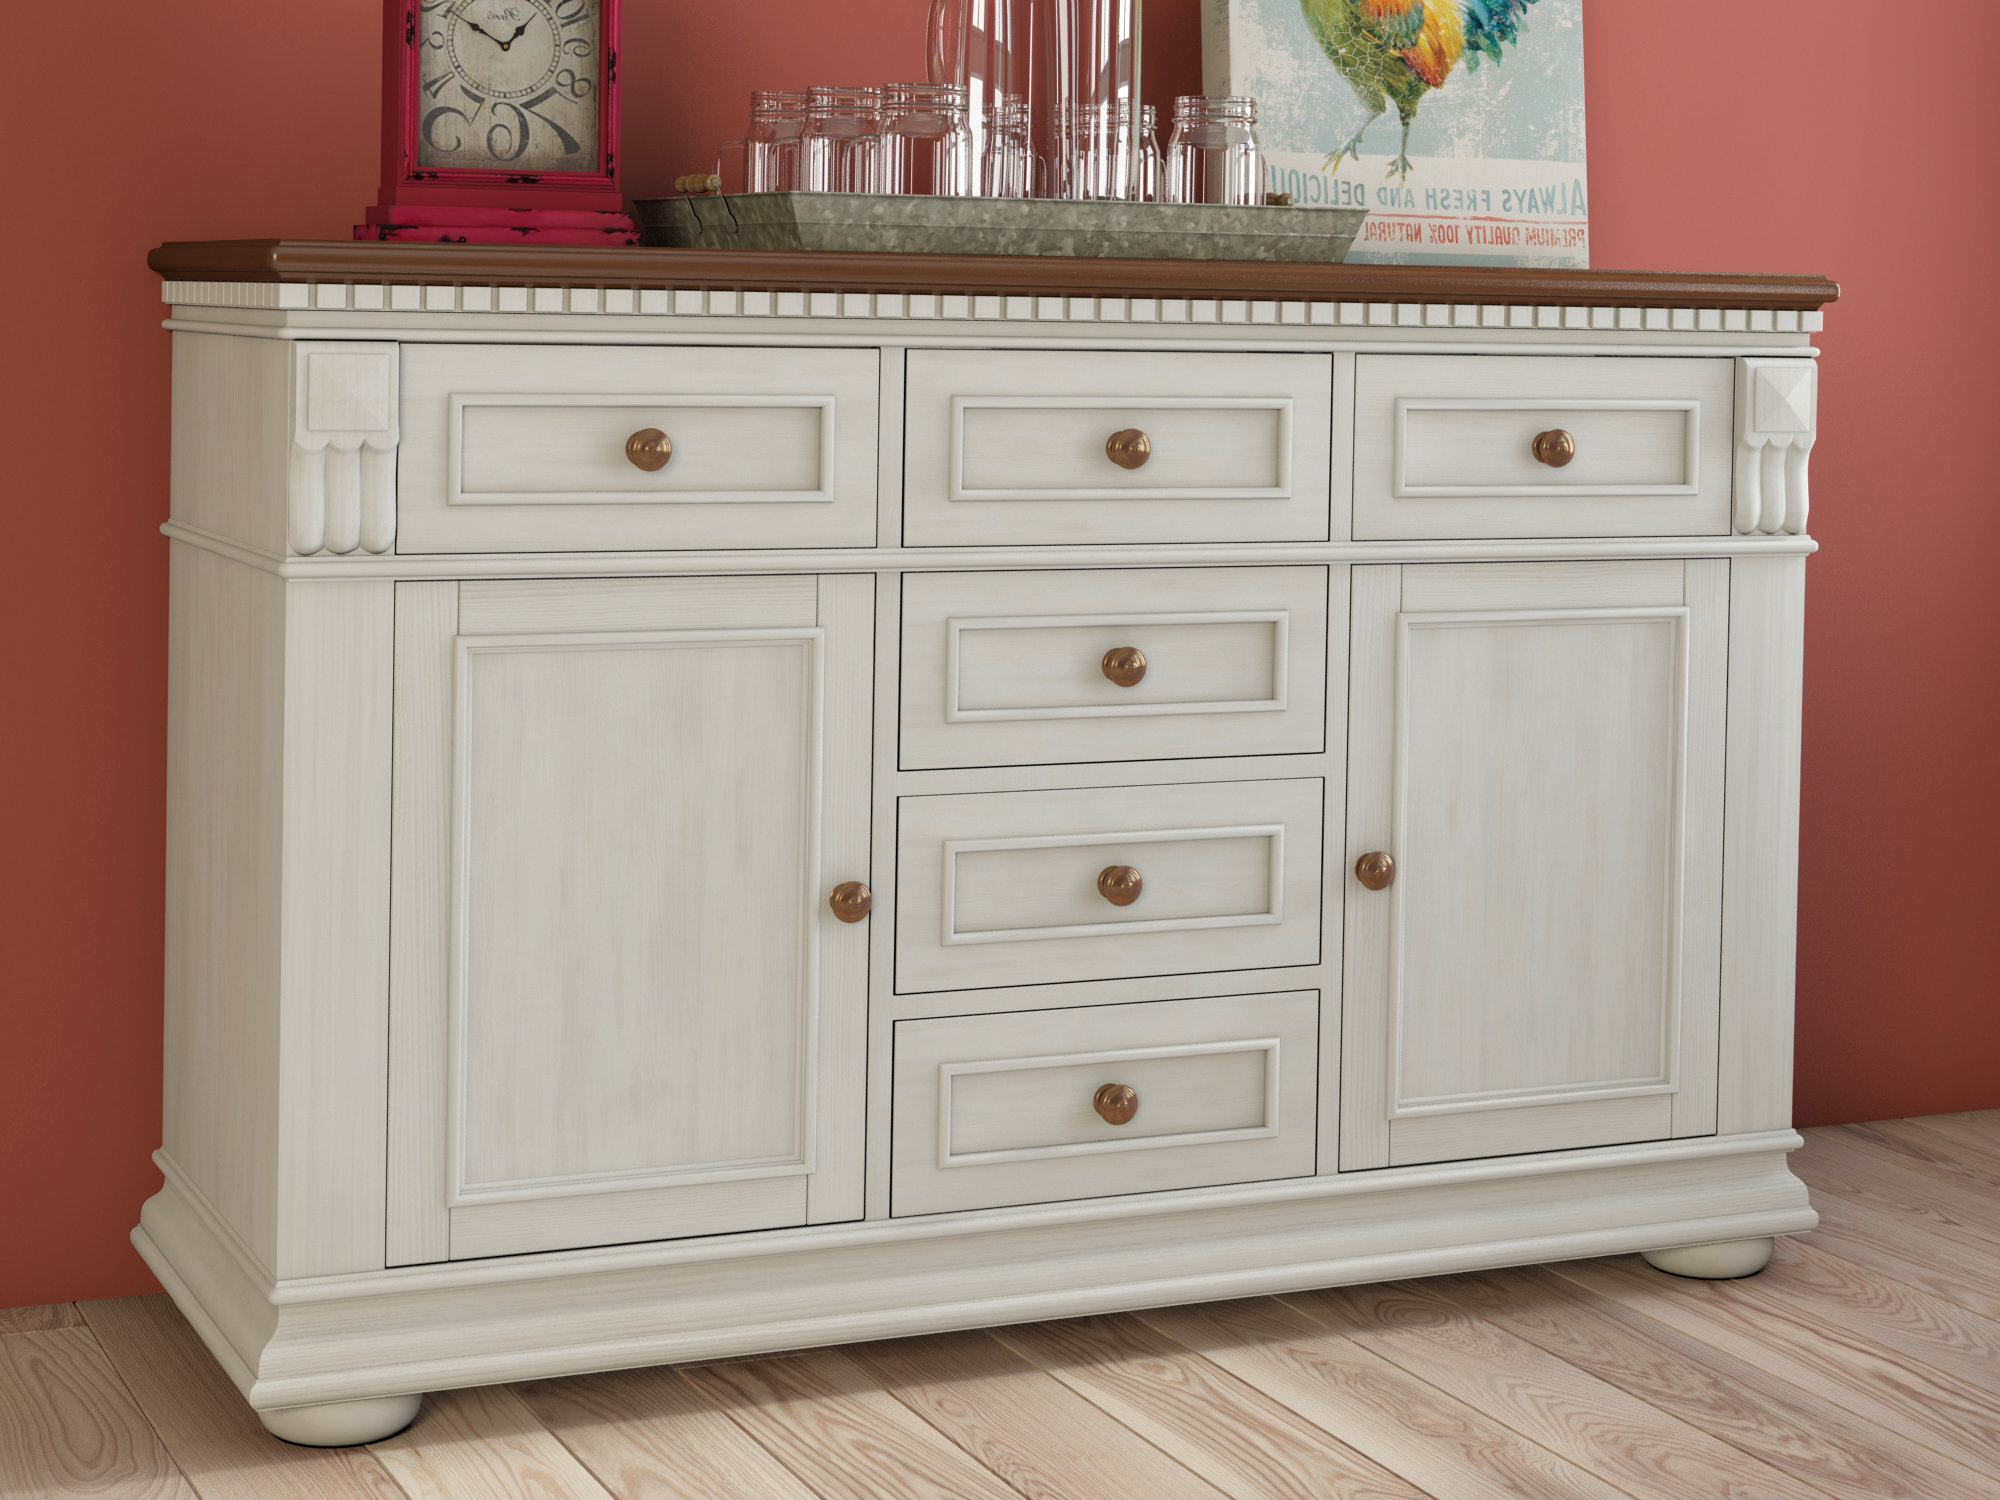 Farmhouse & Rustic Darby Home Co Sideboards & Buffets Throughout Newest Tilman Sideboards (View 7 of 20)